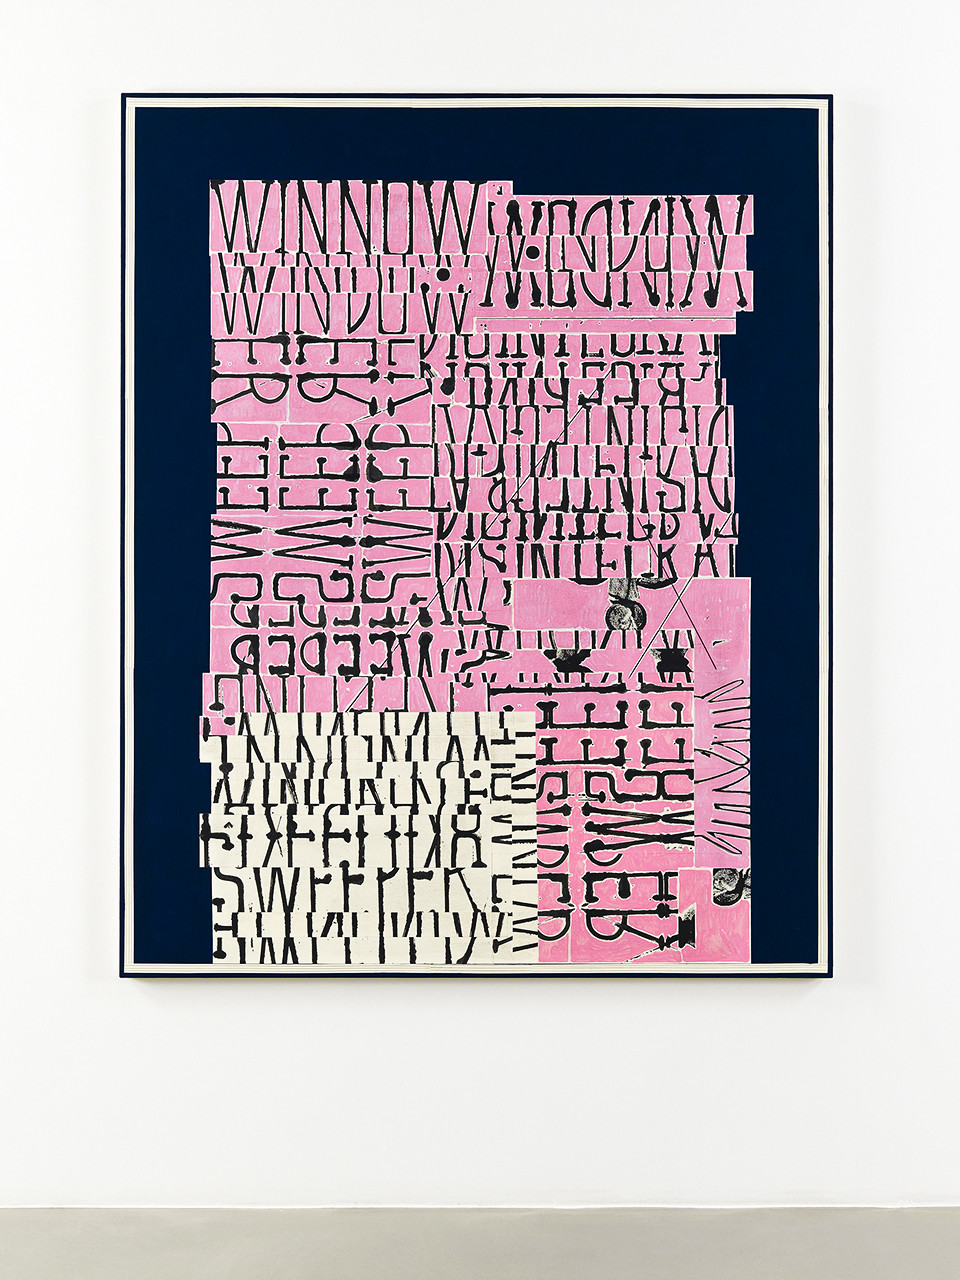 "<div class=""artwork_caption""><p>Word Painting (Sweeper), 2016</p></div>"